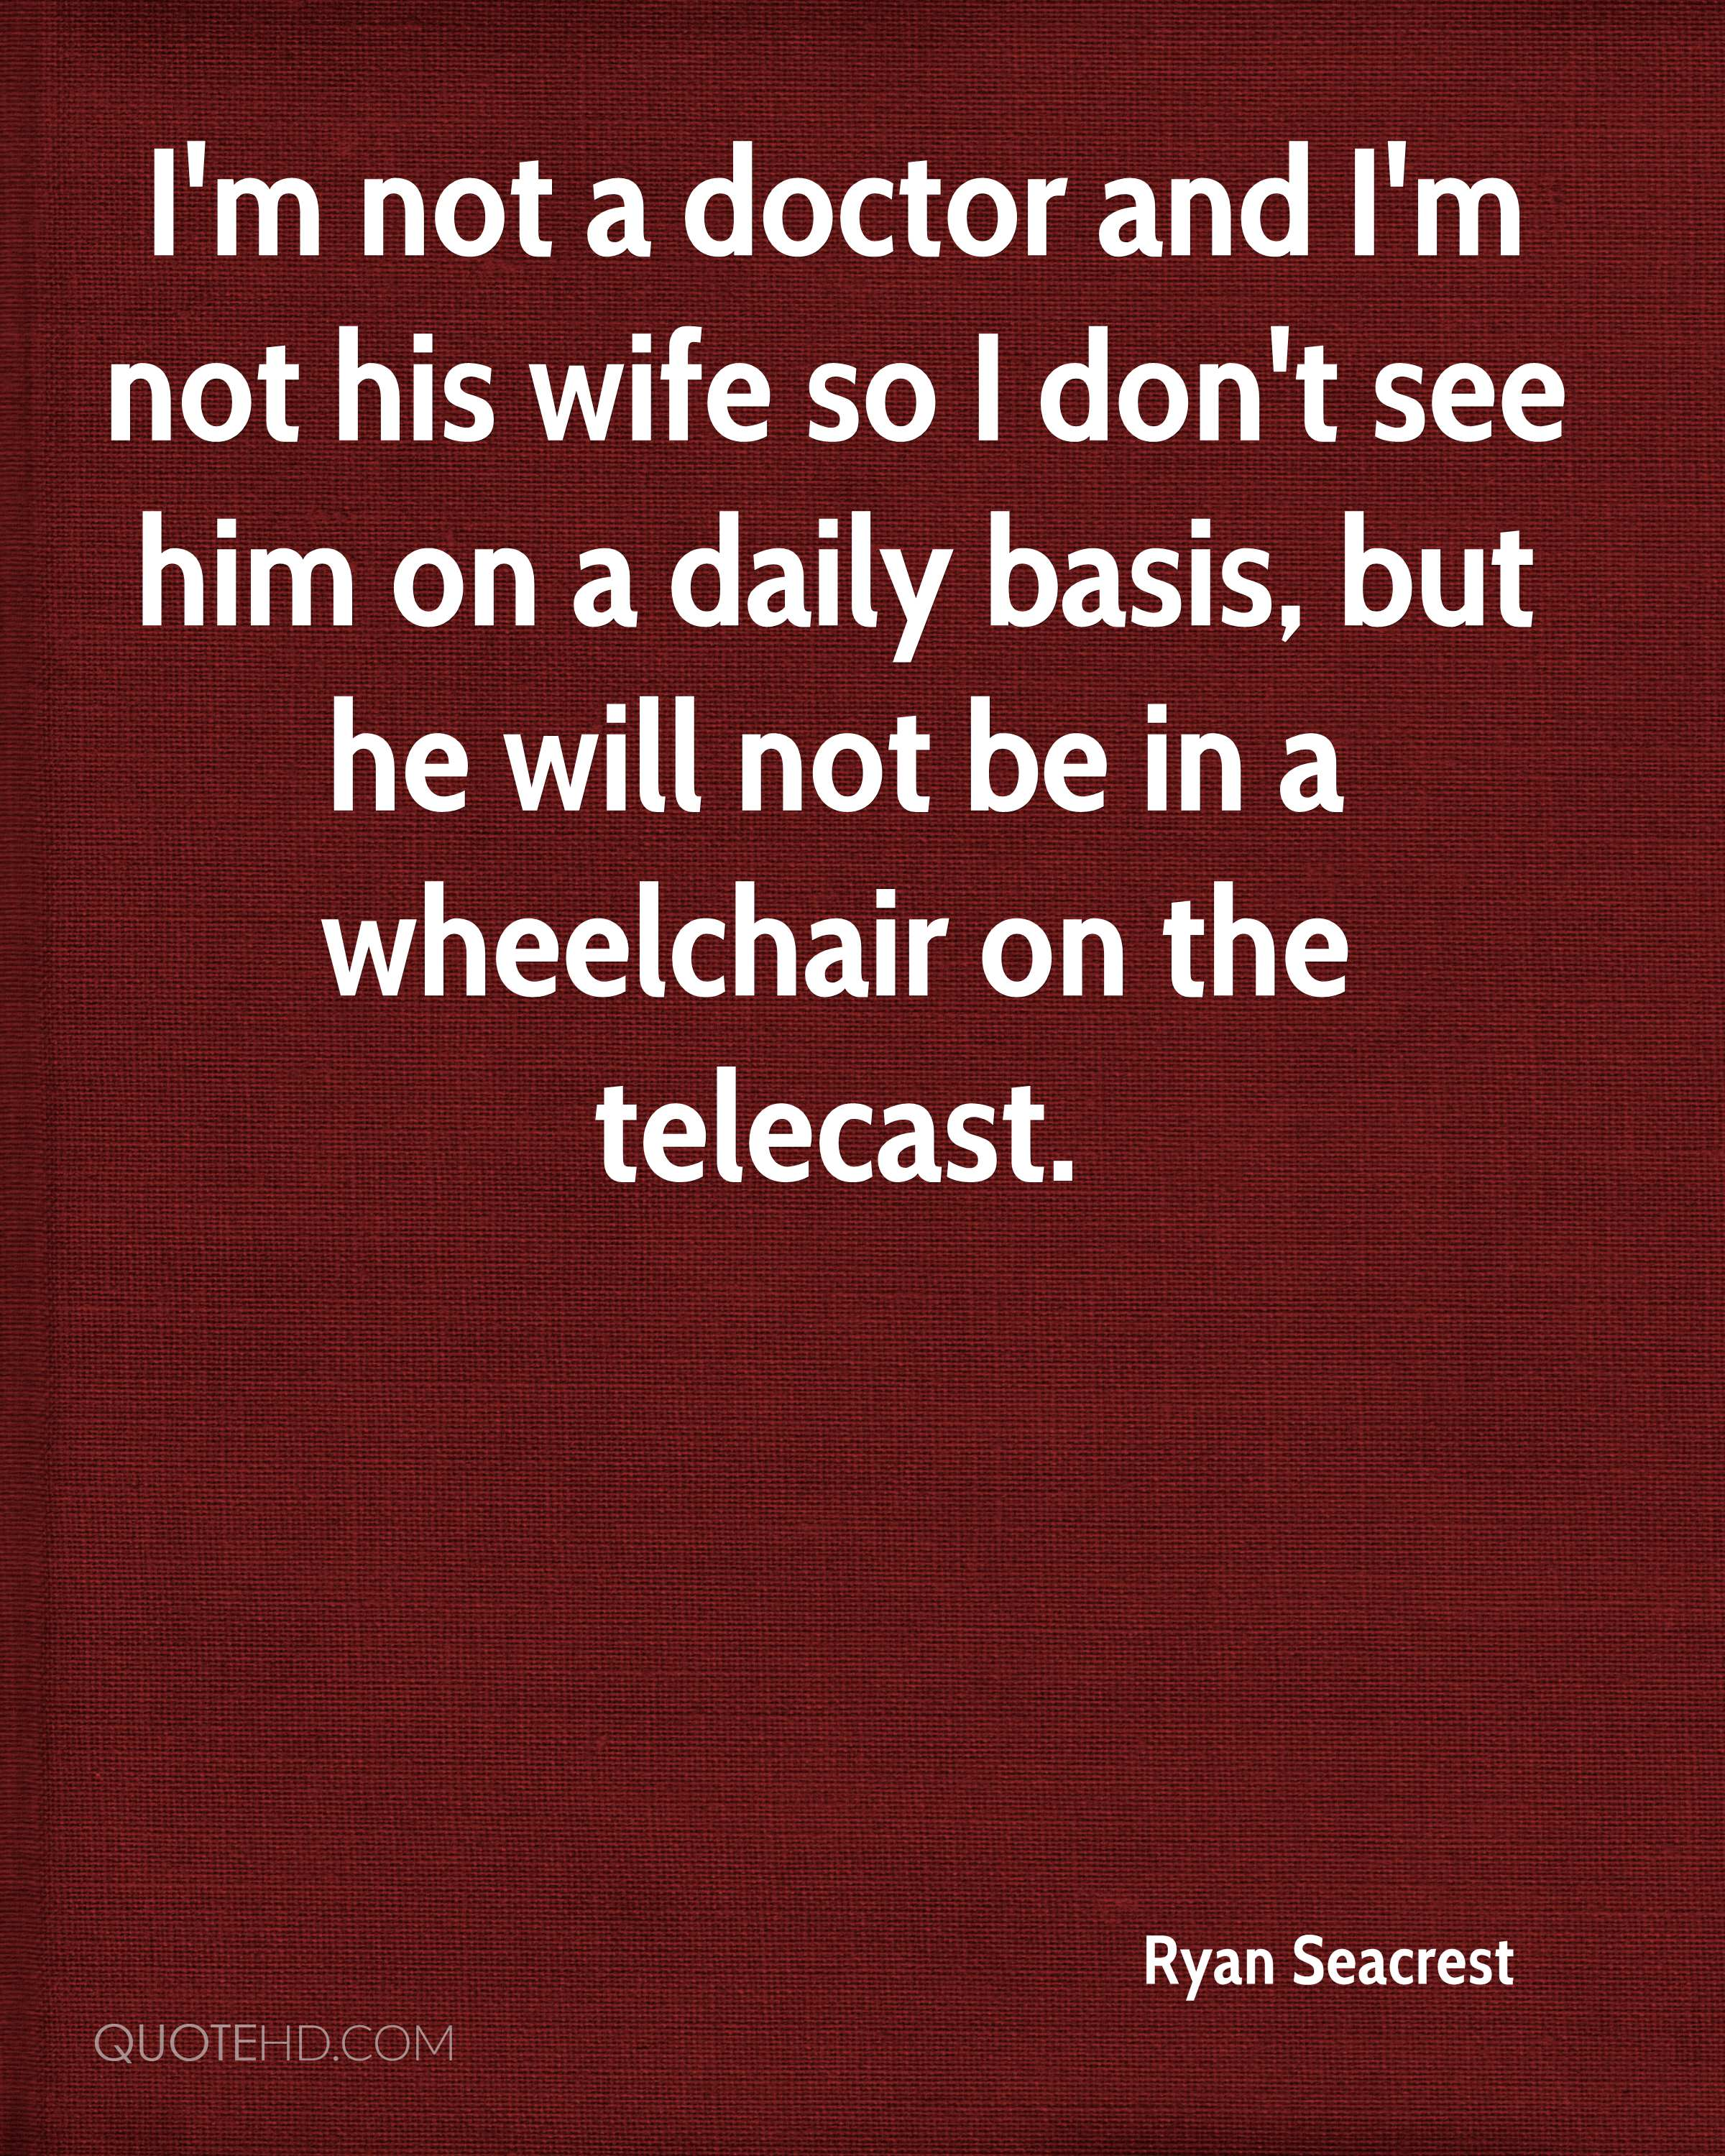 I'm not a doctor and I'm not his wife so I don't see him on a daily basis, but he will not be in a wheelchair on the telecast.